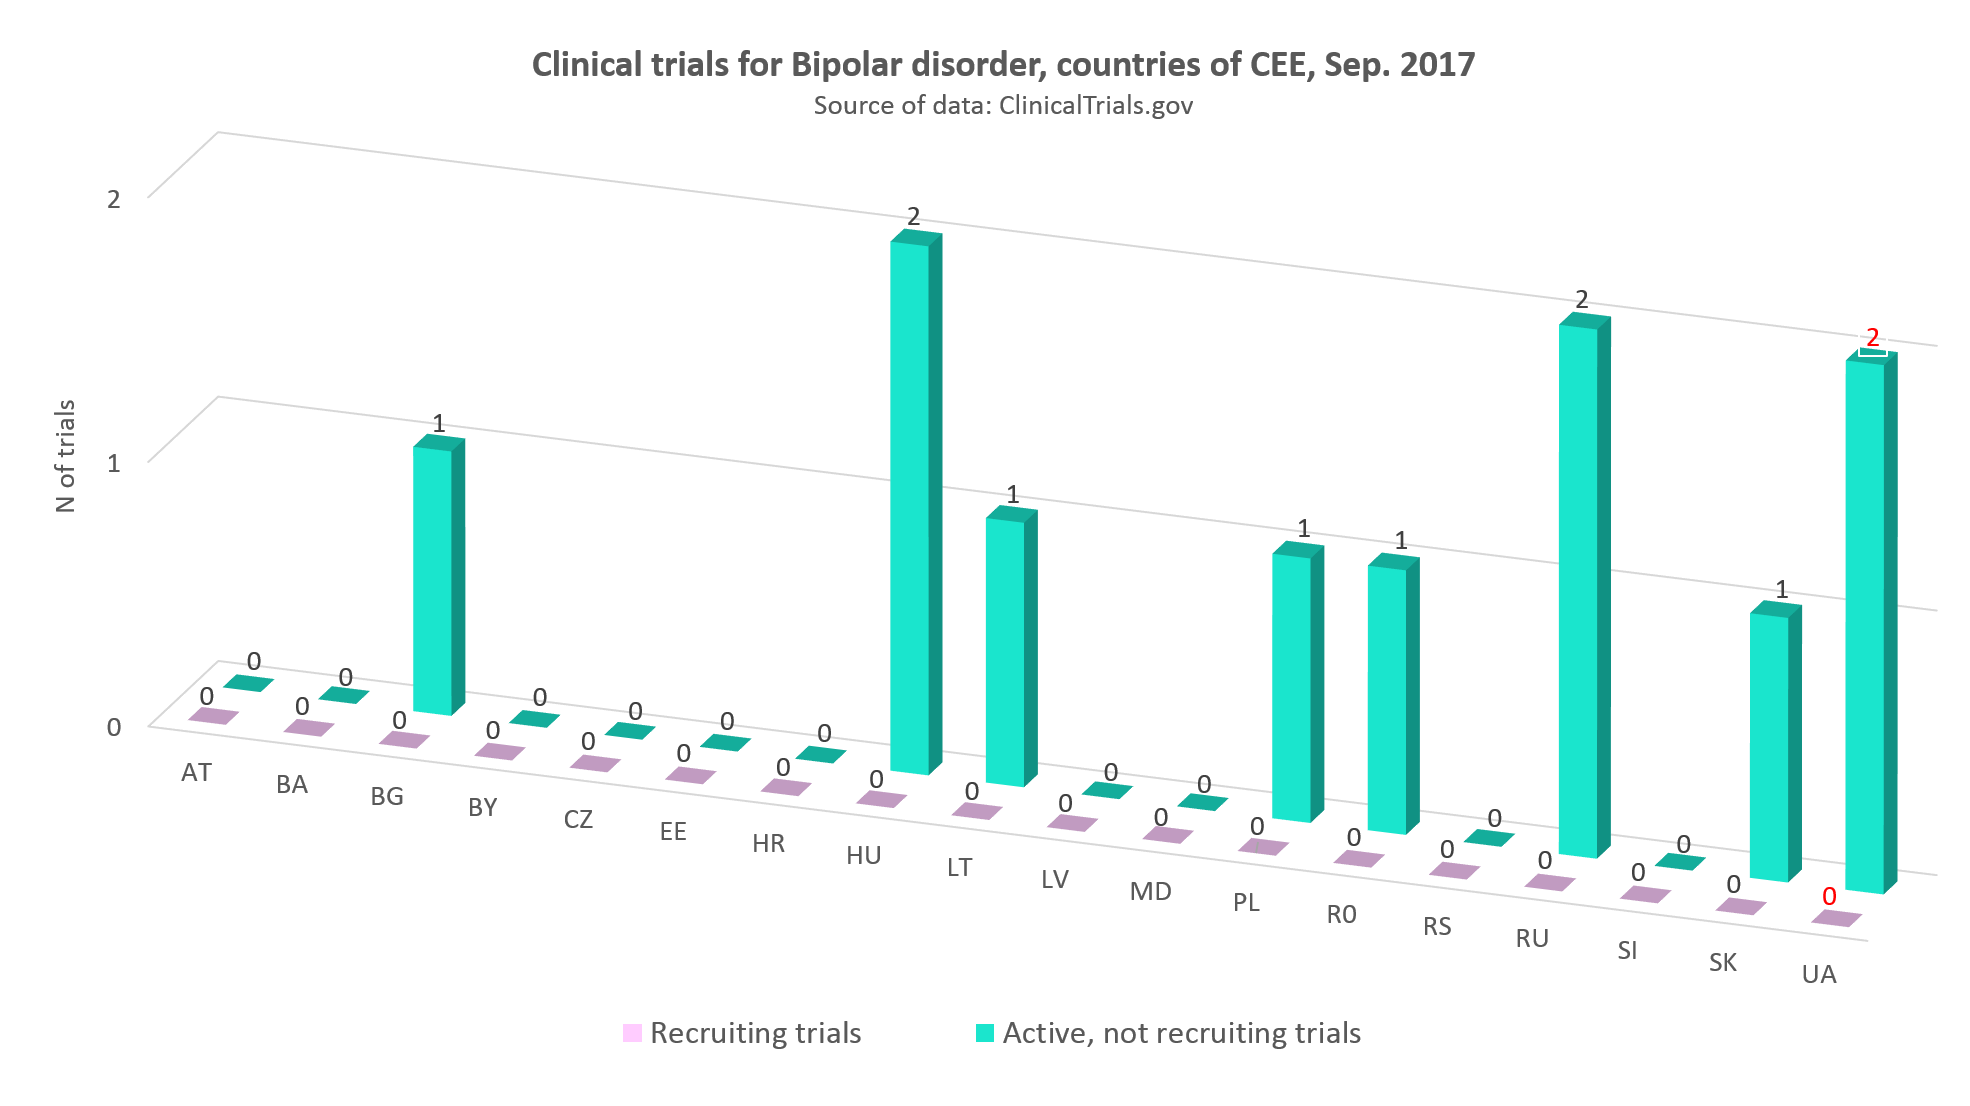 Clinical trials for Bipolar disorder in the countries of CEE, September 2017